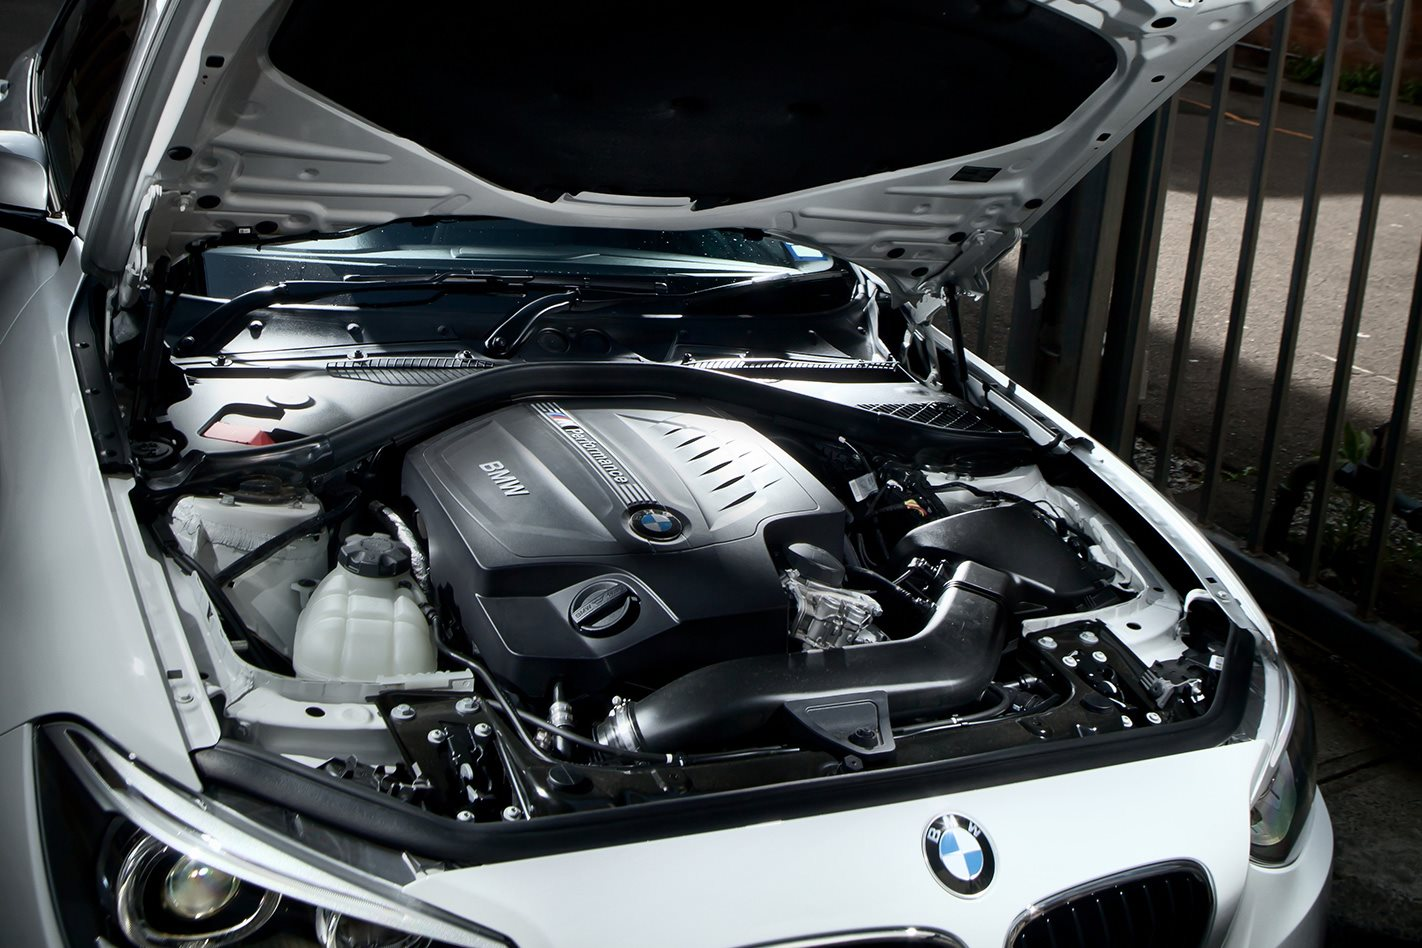 2012-BMW-M135i-engine.jpg